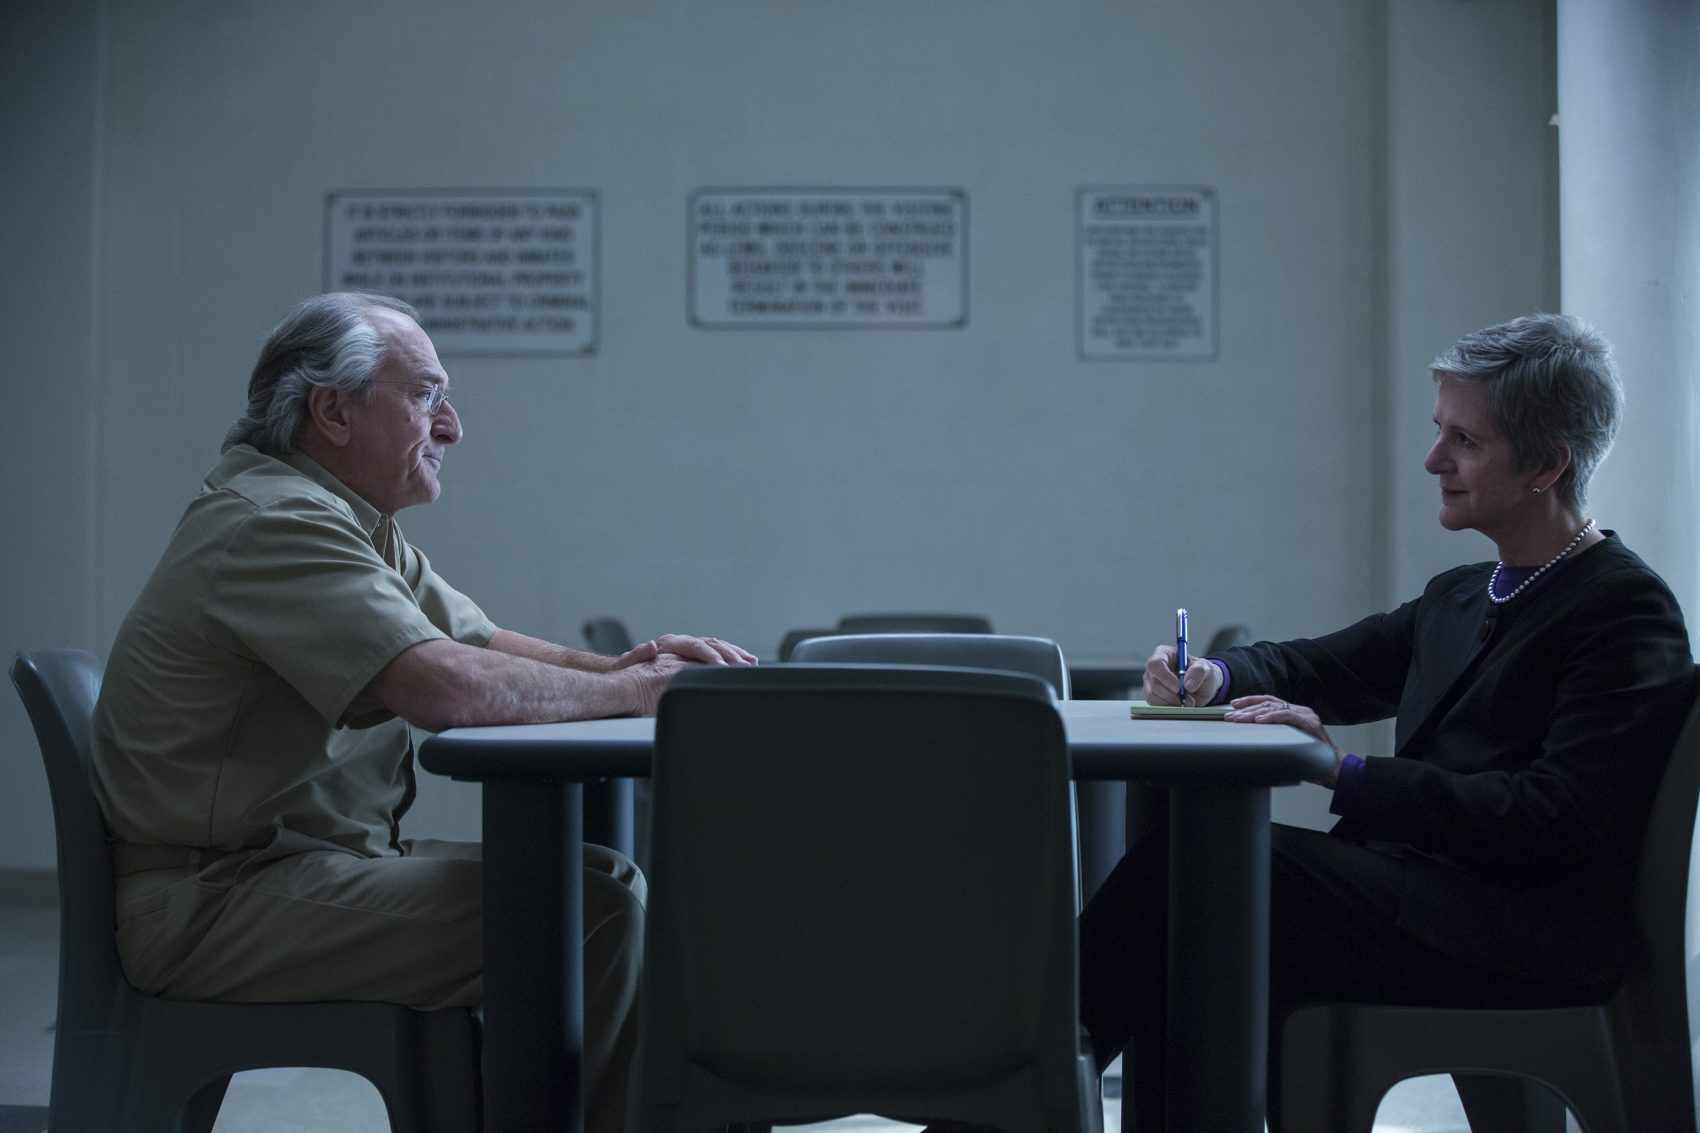 """Robert De Niro (left) as Bernie Madoff and Diana Henriques in a still from the HBO film """"The Wizard of Lies."""" (Courtesy Craig Blankenhorn/HBO)"""